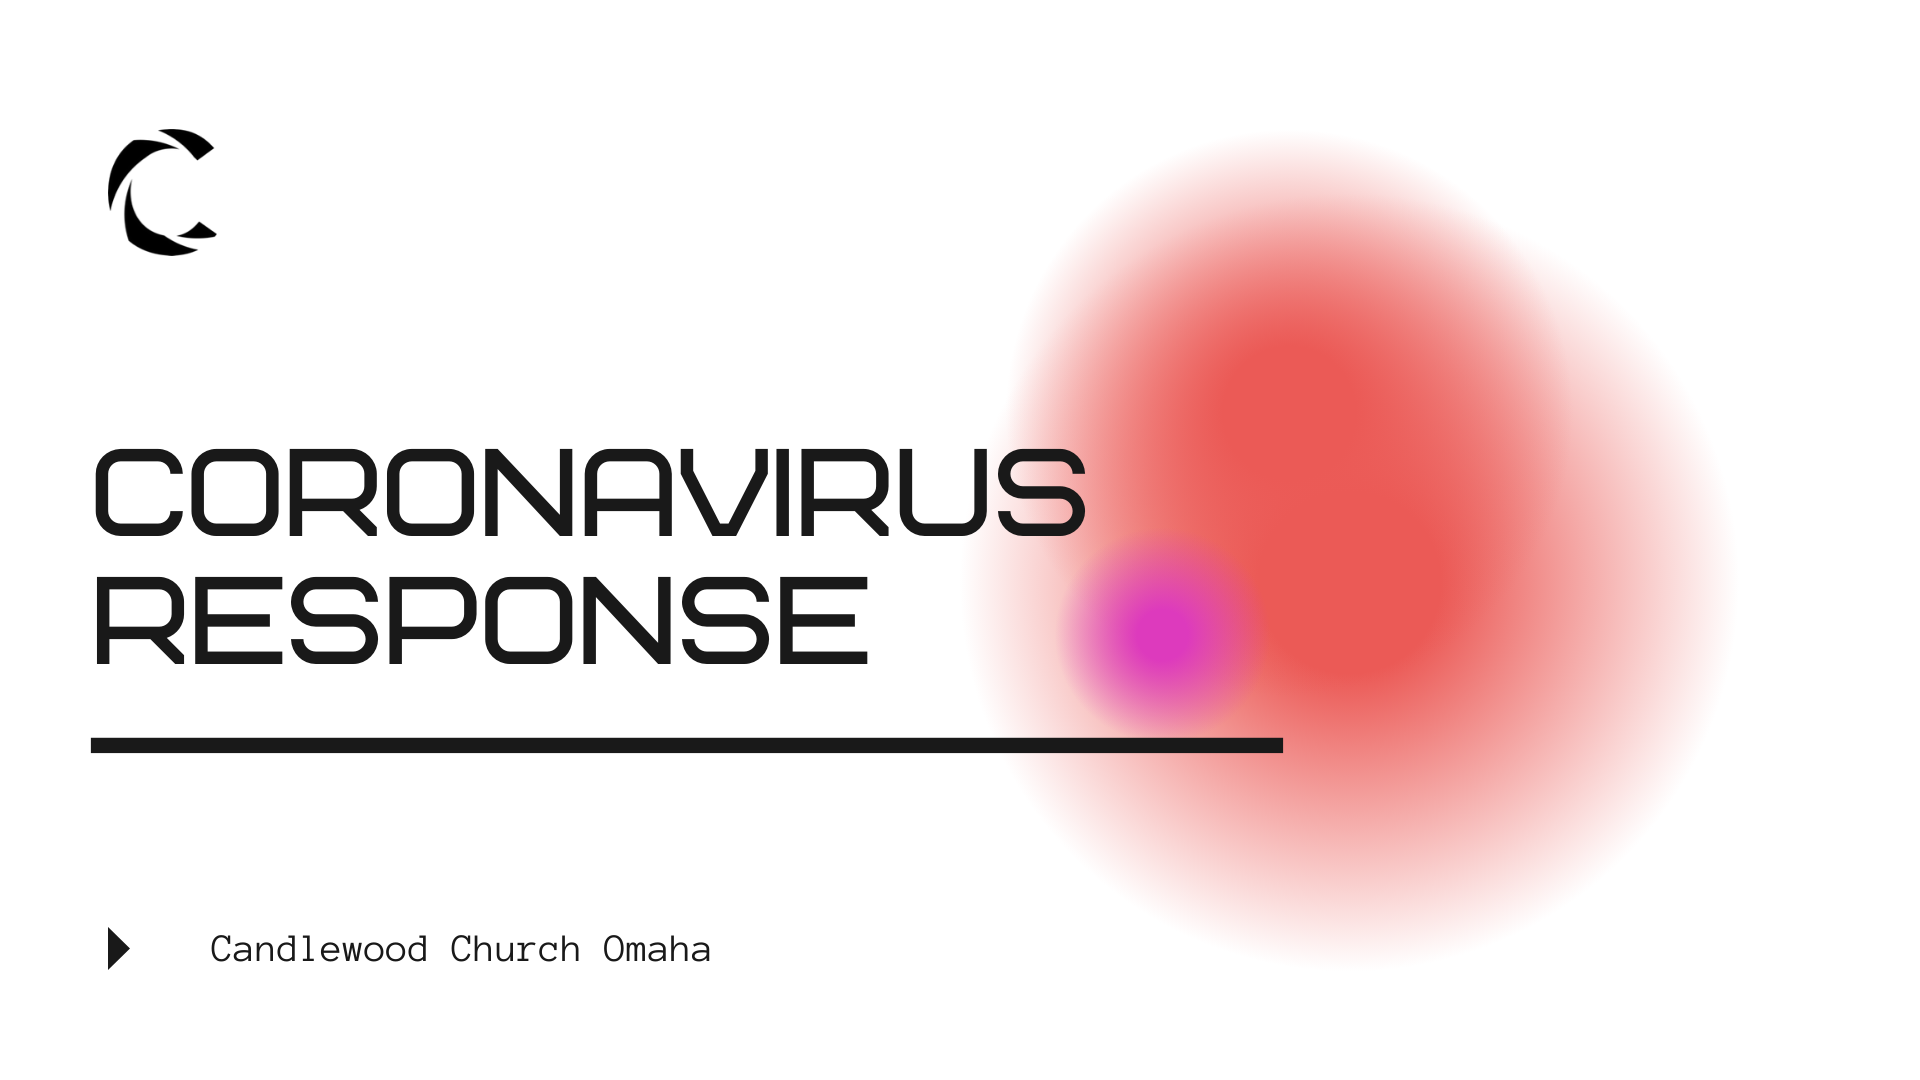 coronavirus response from candlewood church omaha